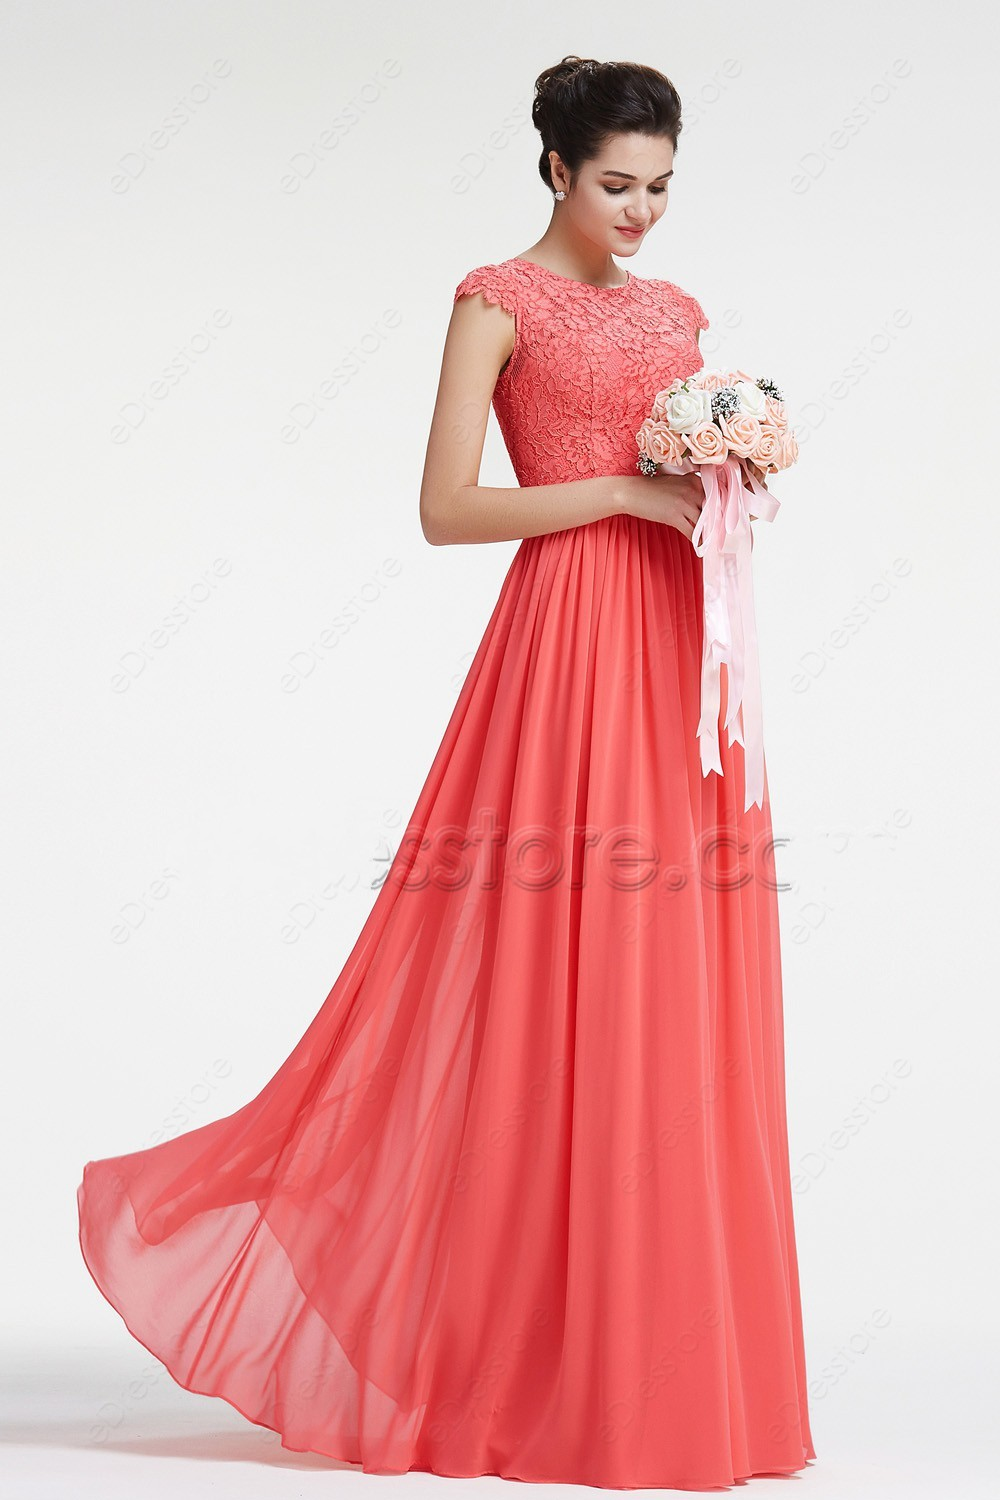 Cecelle 2016 Coral Modest Chiffon Lace Bridesmaid Dresses Cap Sleeves Long  A-line Floor Length Wedding Guests Dresses Cheap